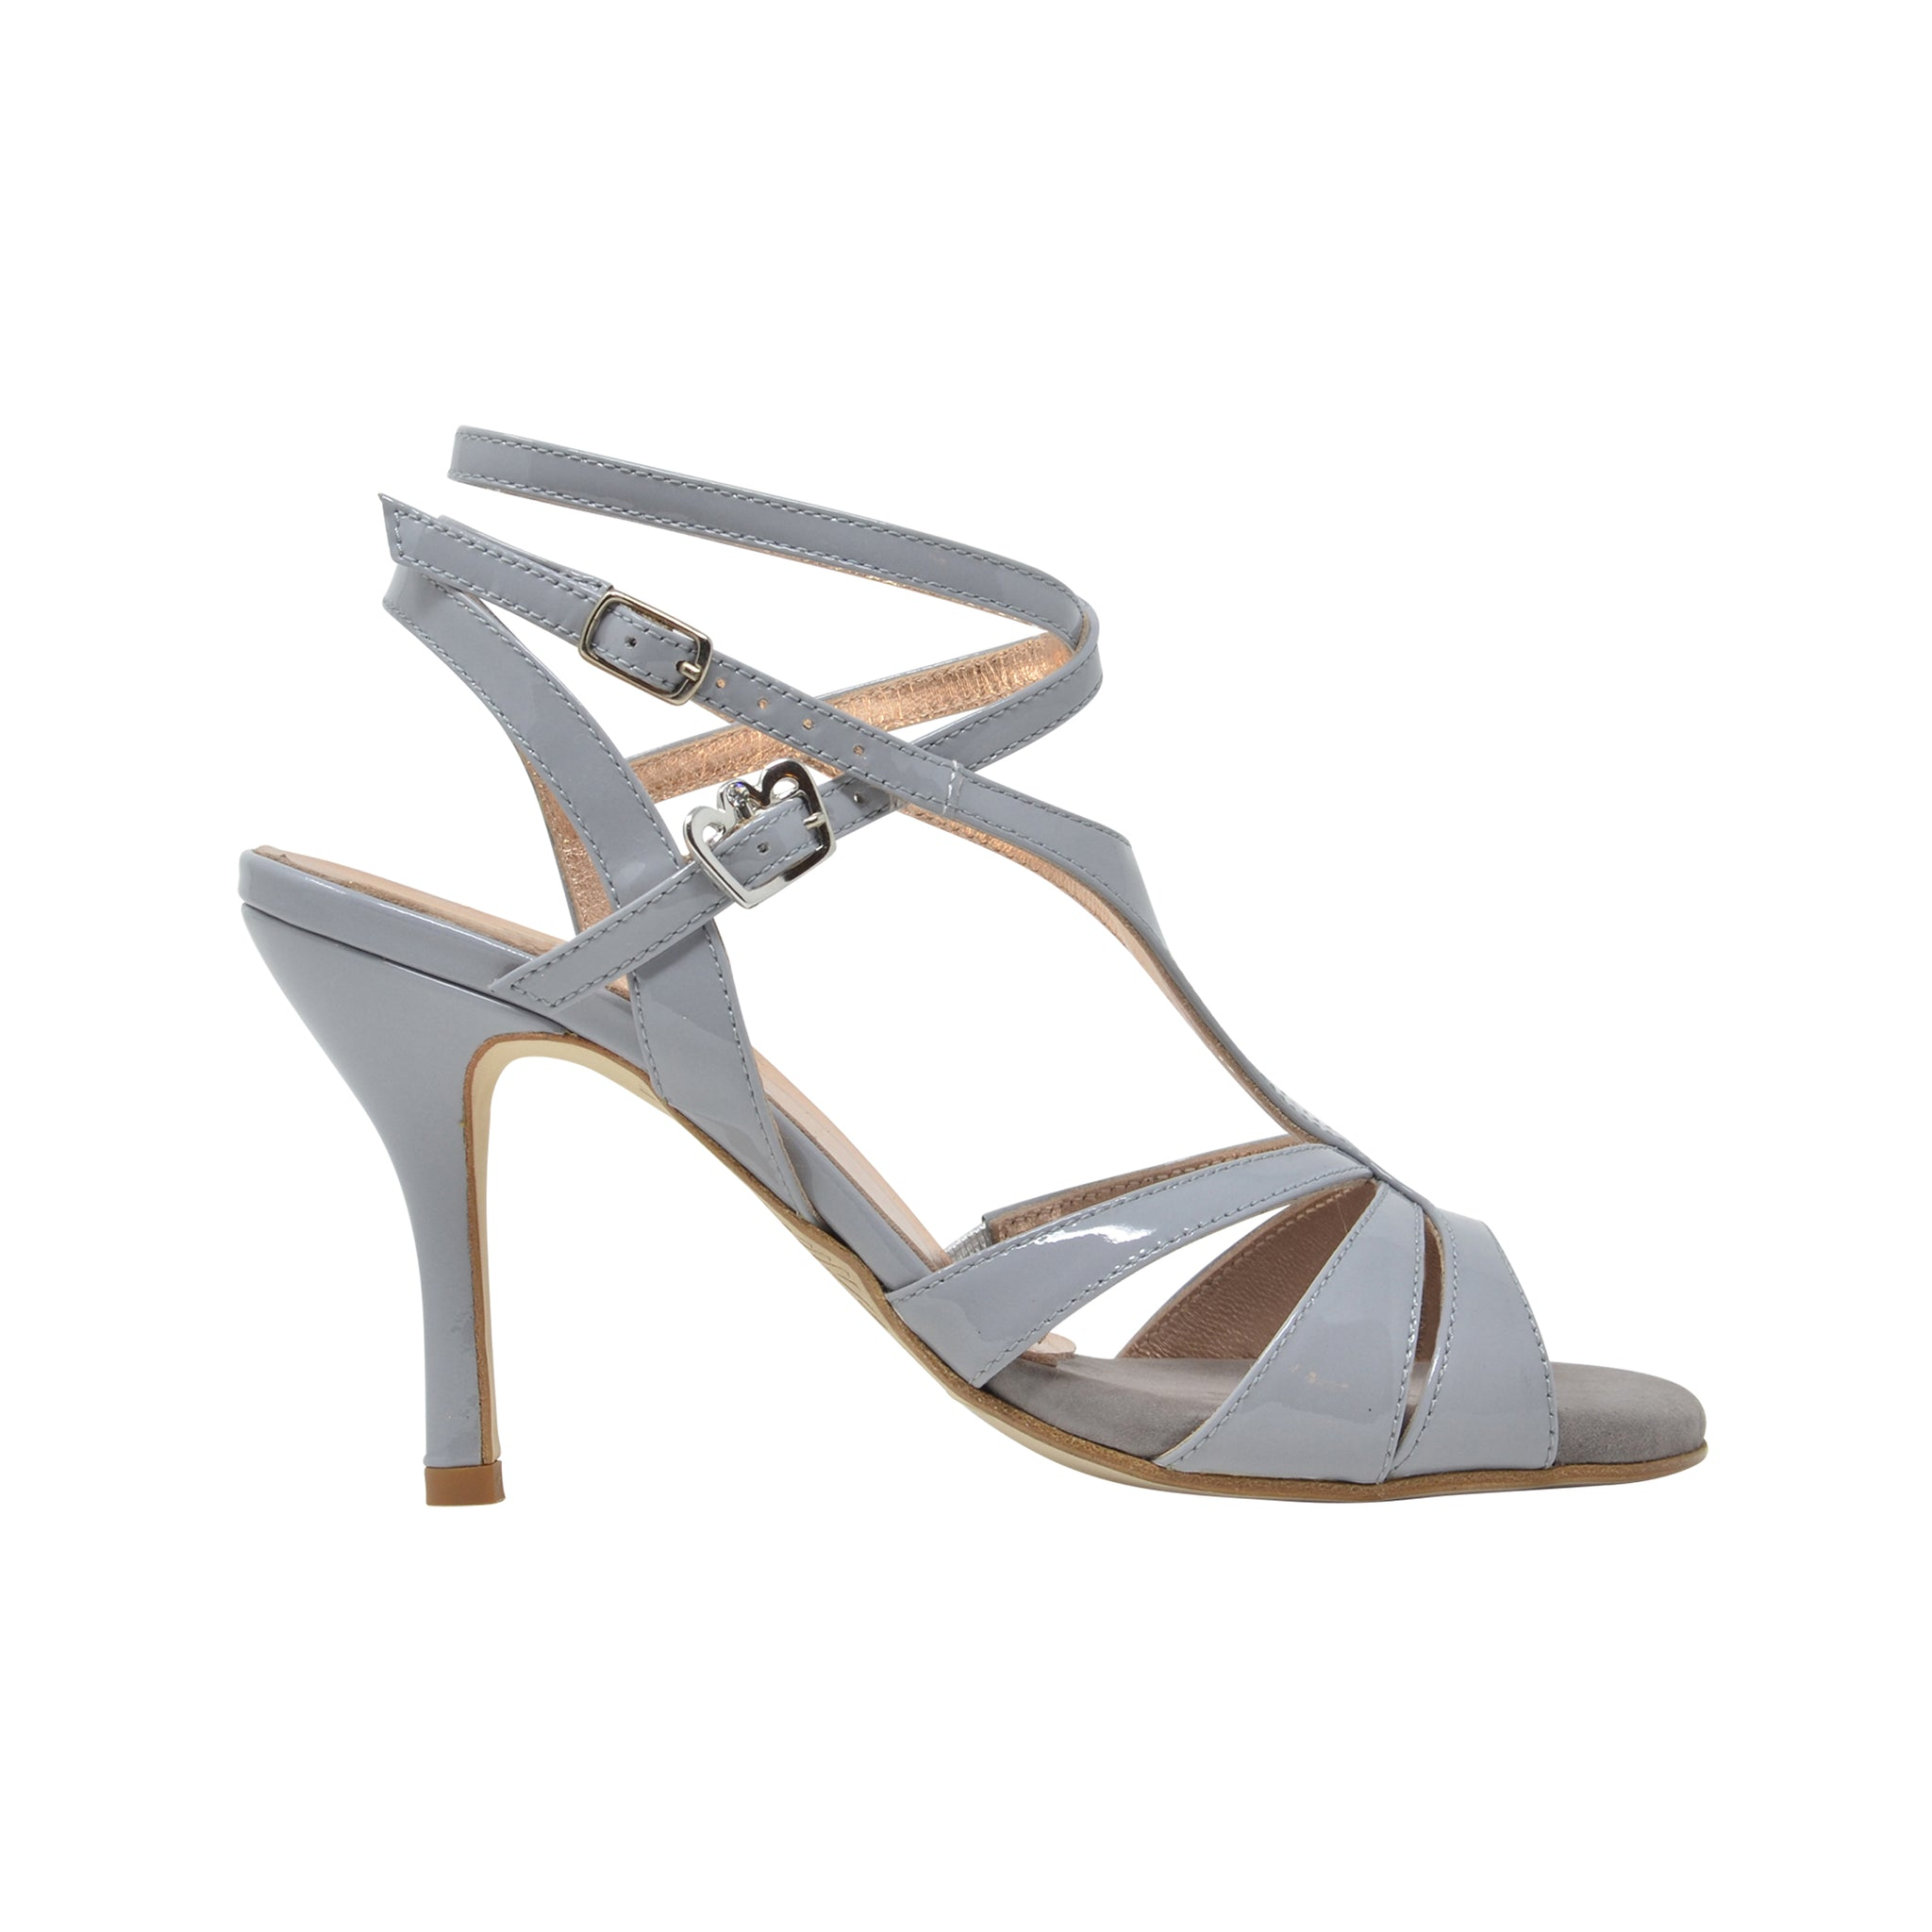 Size 6 - Recoleta Twins in Silky Gray Patent Leather - Regina